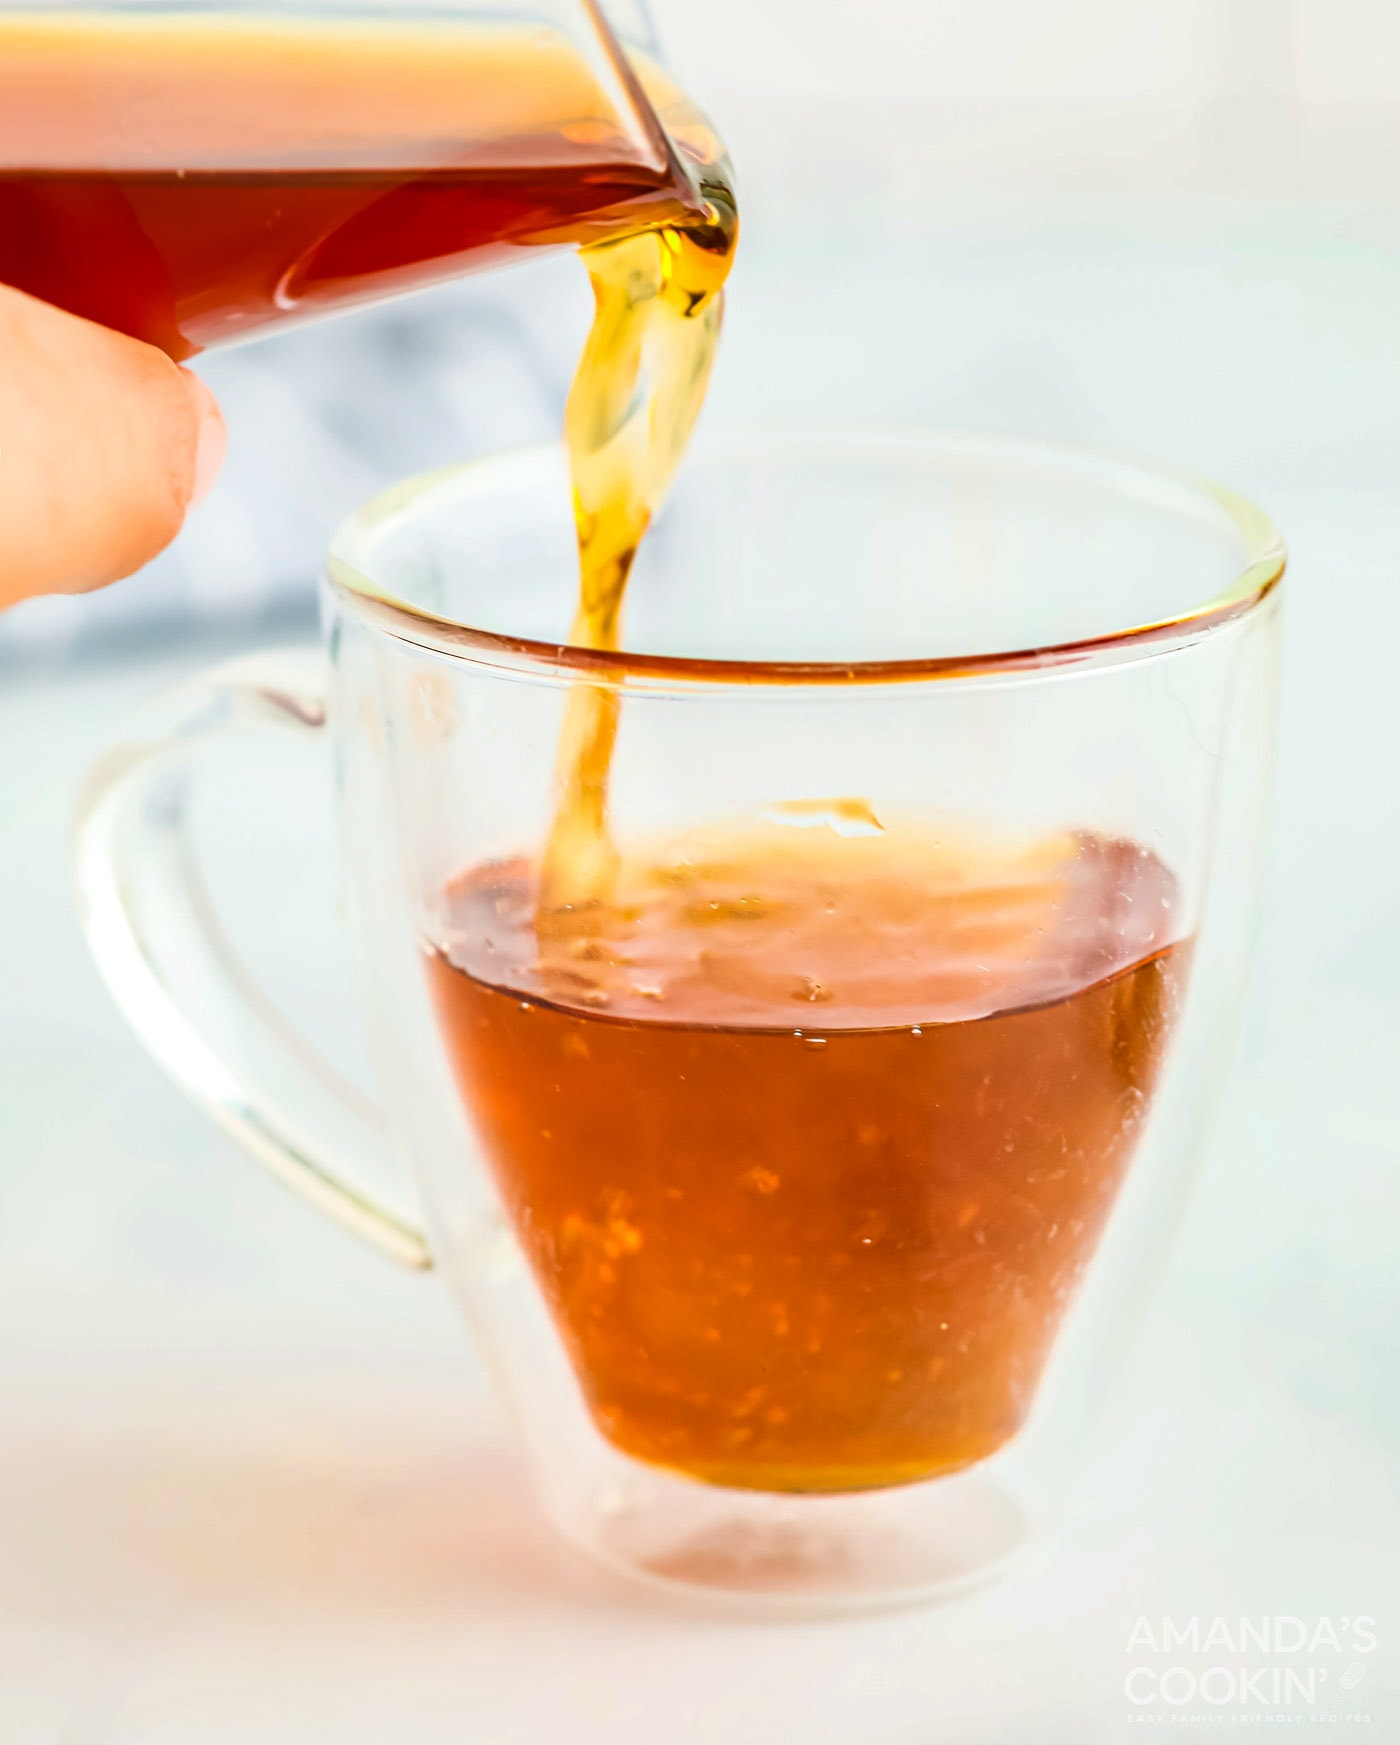 pouring apple cider into a glass mug with whiskey and vodka